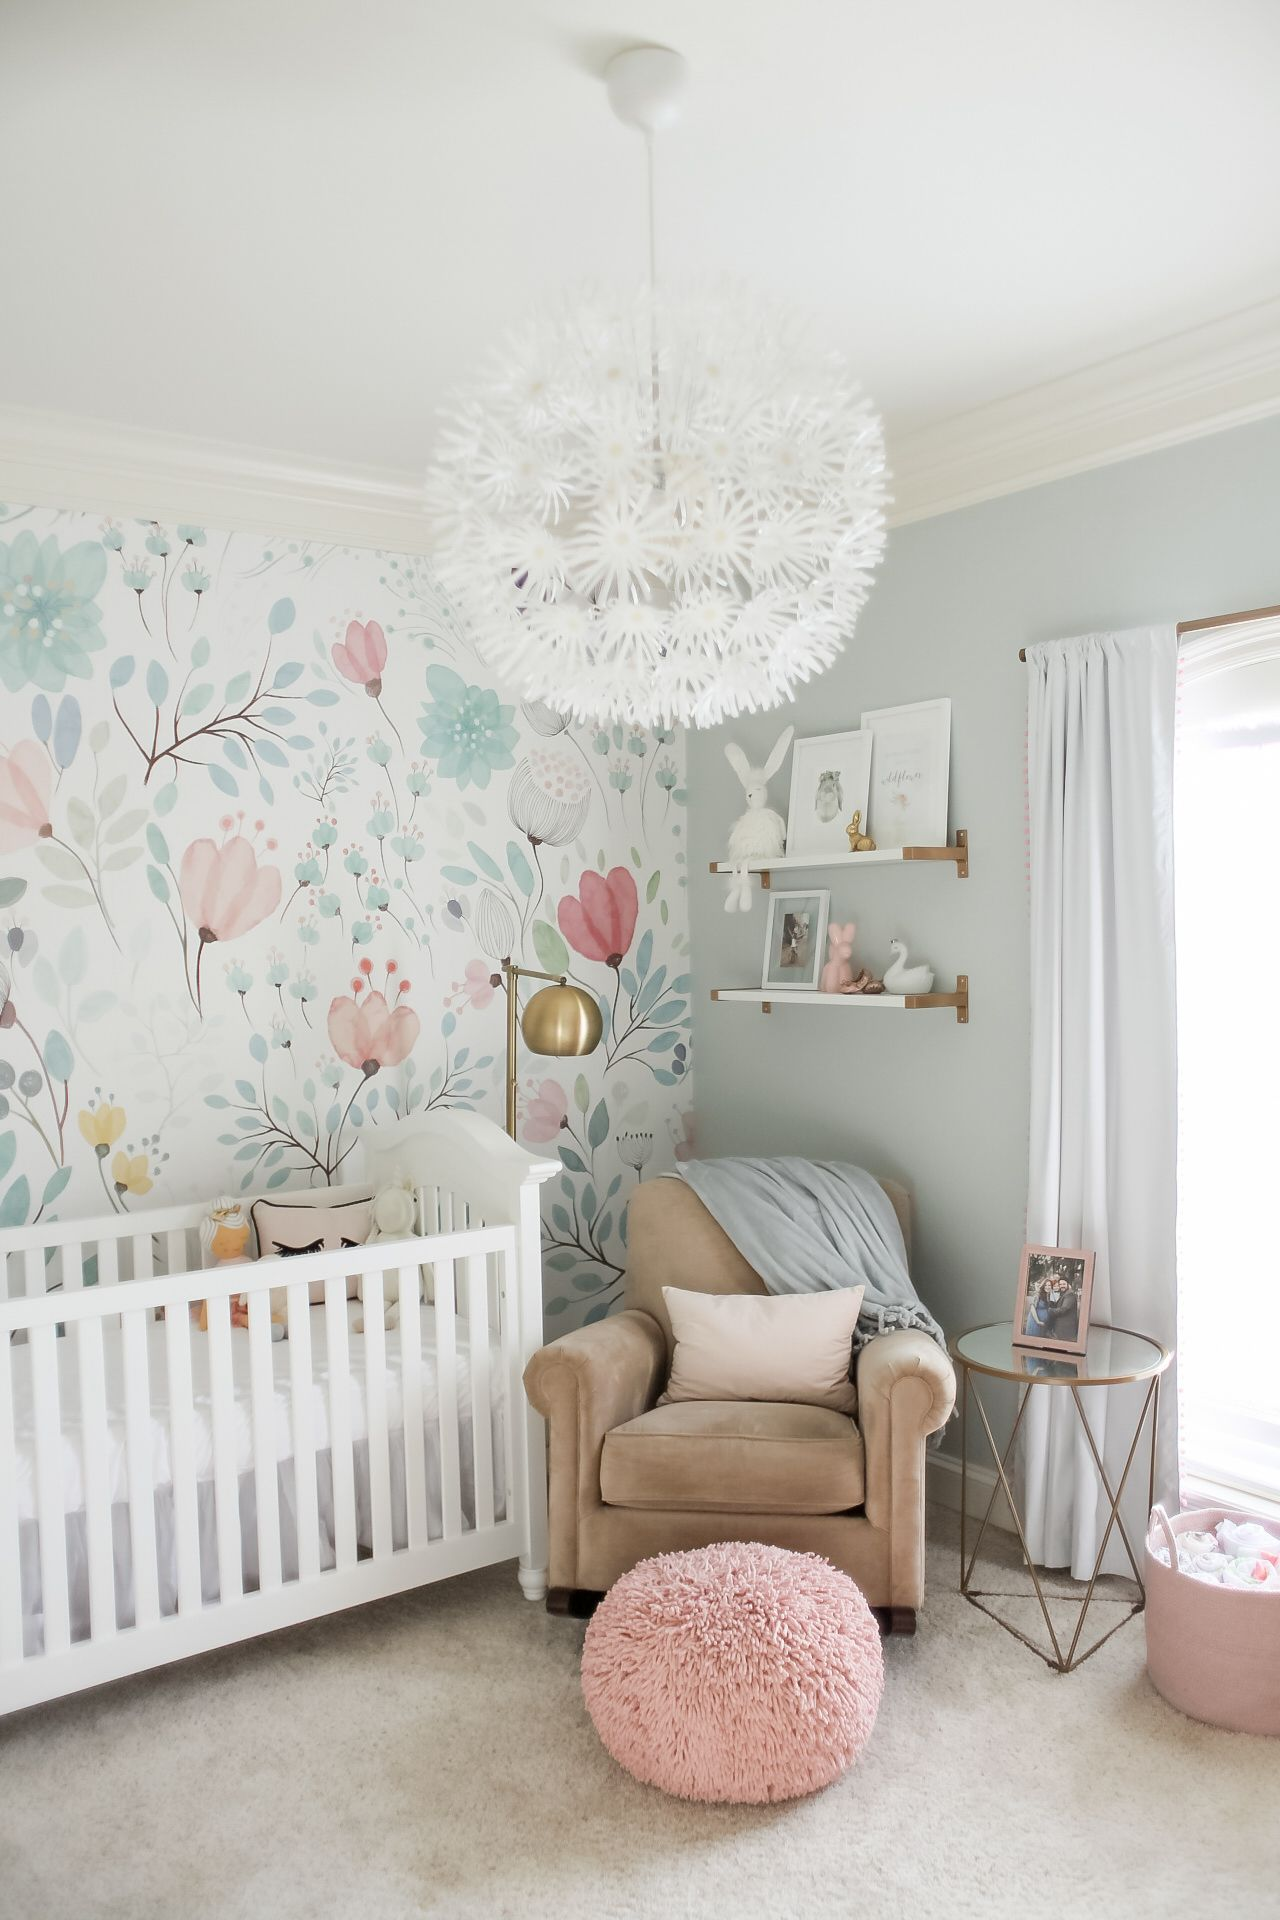 Bright And Whimsical Nursery For Colette - Project Nursery | Girl Nursery Room, Baby Girl Nursery Room, Nursery Baby Room